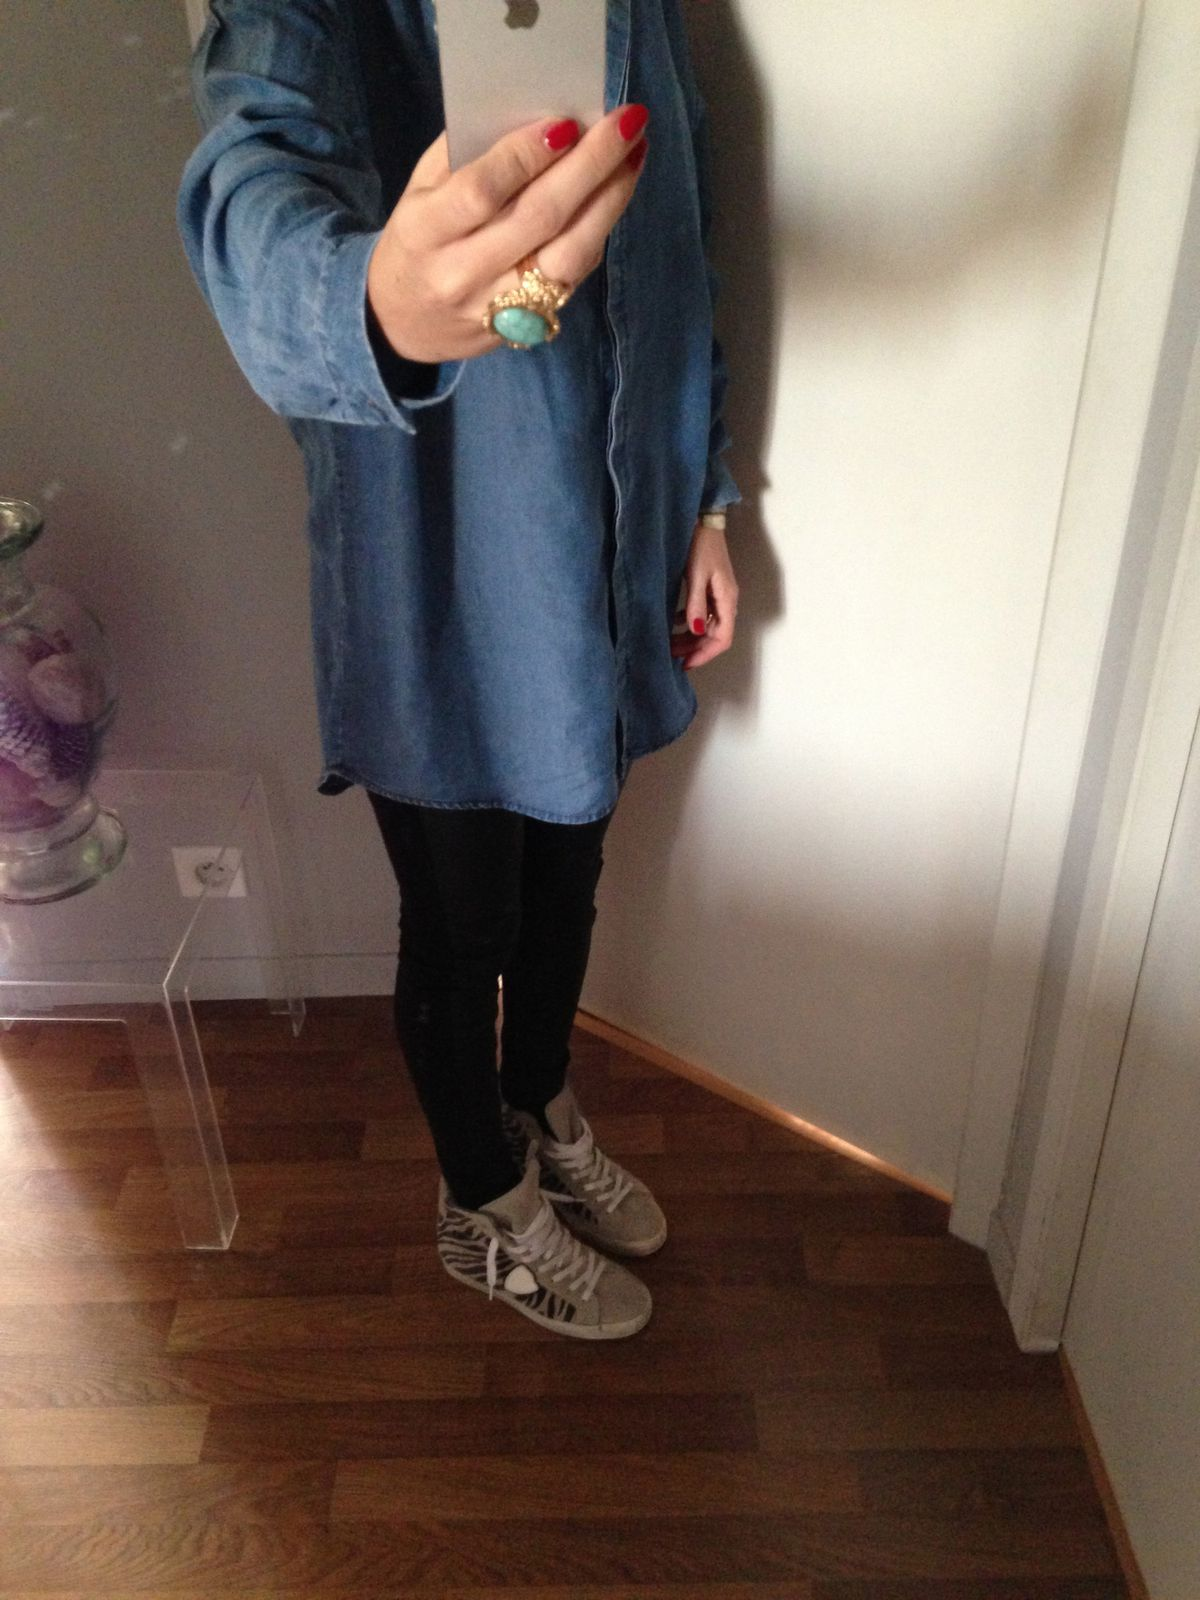 chemise monki, legging cuir zara, baskets philip model, bagues ysl